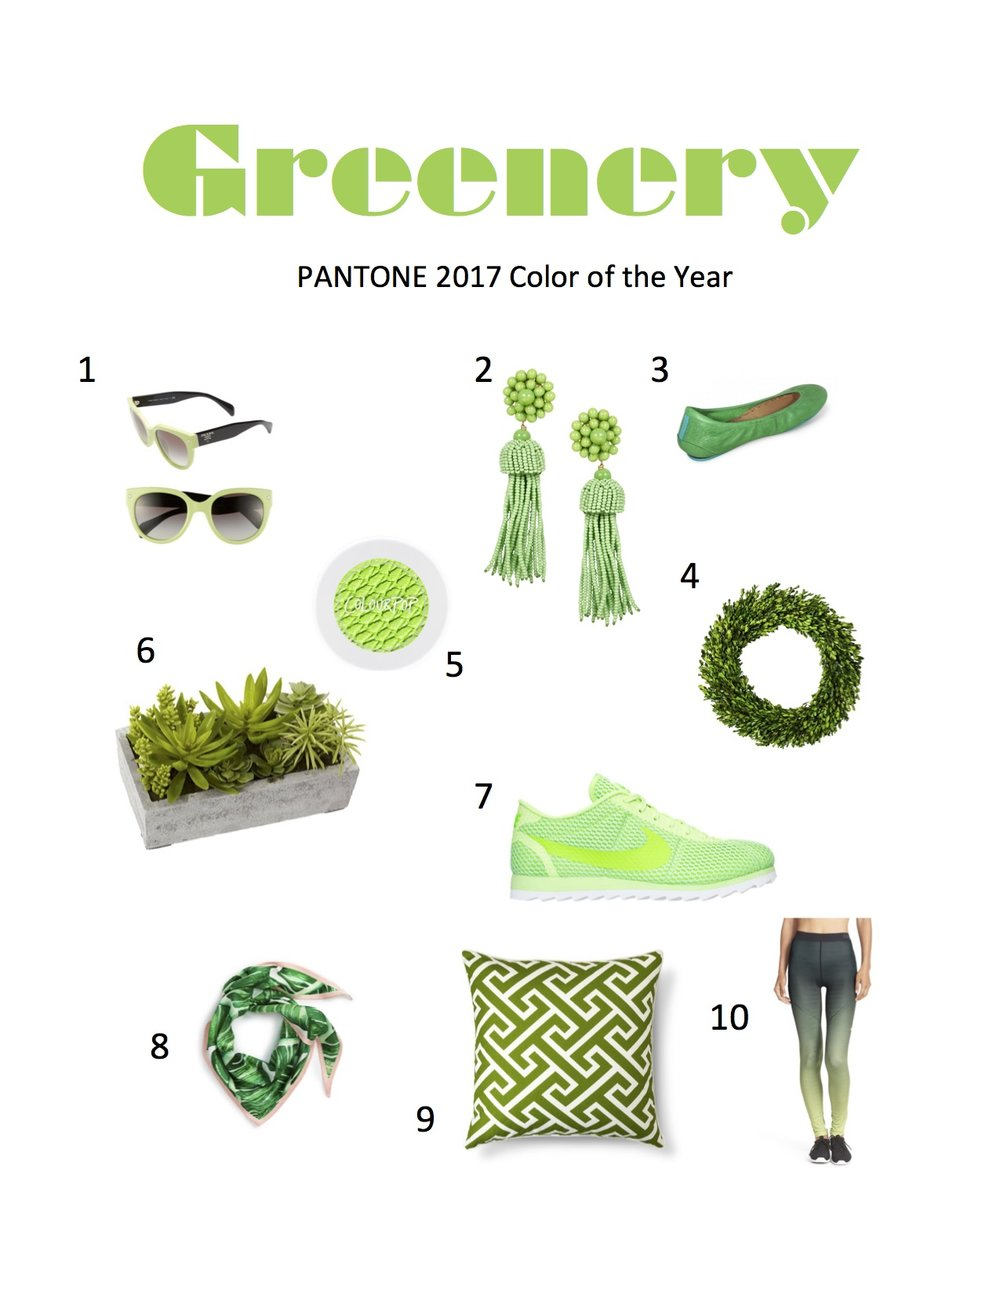 1.  Prada Sunglasses  //  2.  Lisi Lerch Tassel Earrings  //  3.  Tieks Ballet Flats  //  4.  Boxwood Wreath  //  5.  ColourPop Pigment Powder  //  6.  Faux Succulent Garden  //  7.  Women's Nike Cortez  //  8.  Echo Palm Silk Scarf  //  9.  Greek Key Throw Pillow  //  10.  Nike Tights